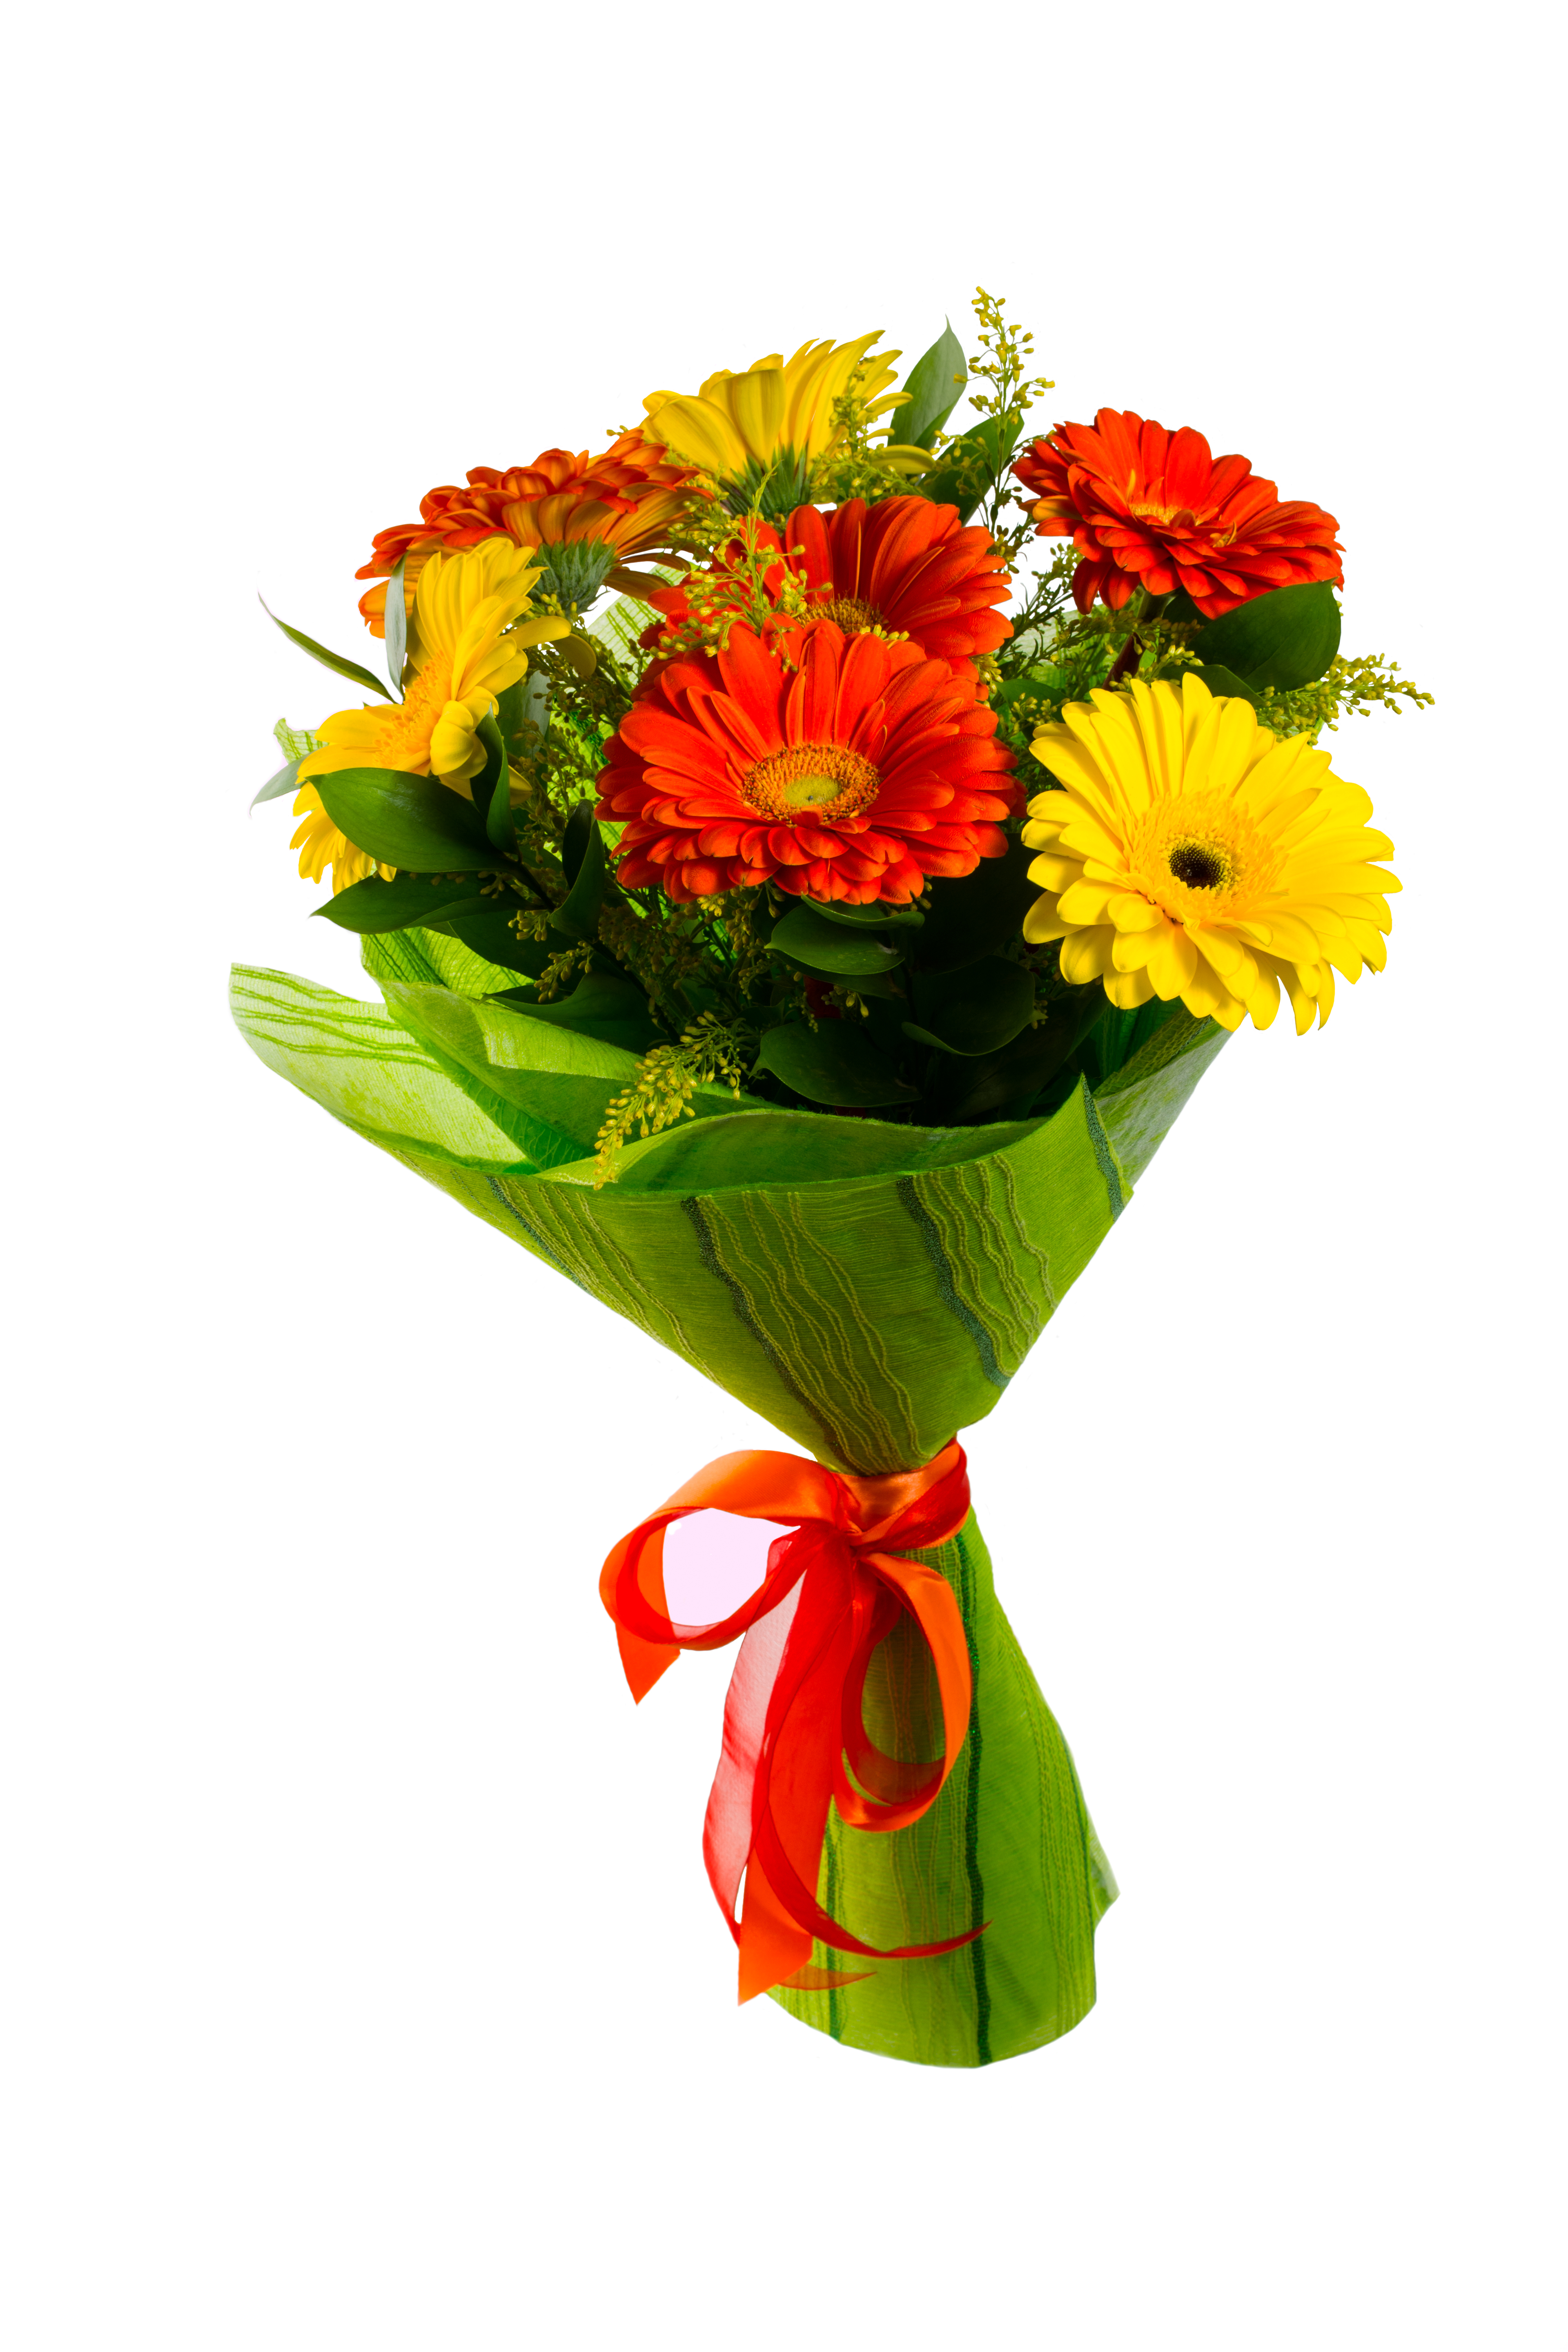 Gerberas dhalia fleuriste red and yellow flower bouquet isolated on white greeting background flowers greeting card mightylinksfo